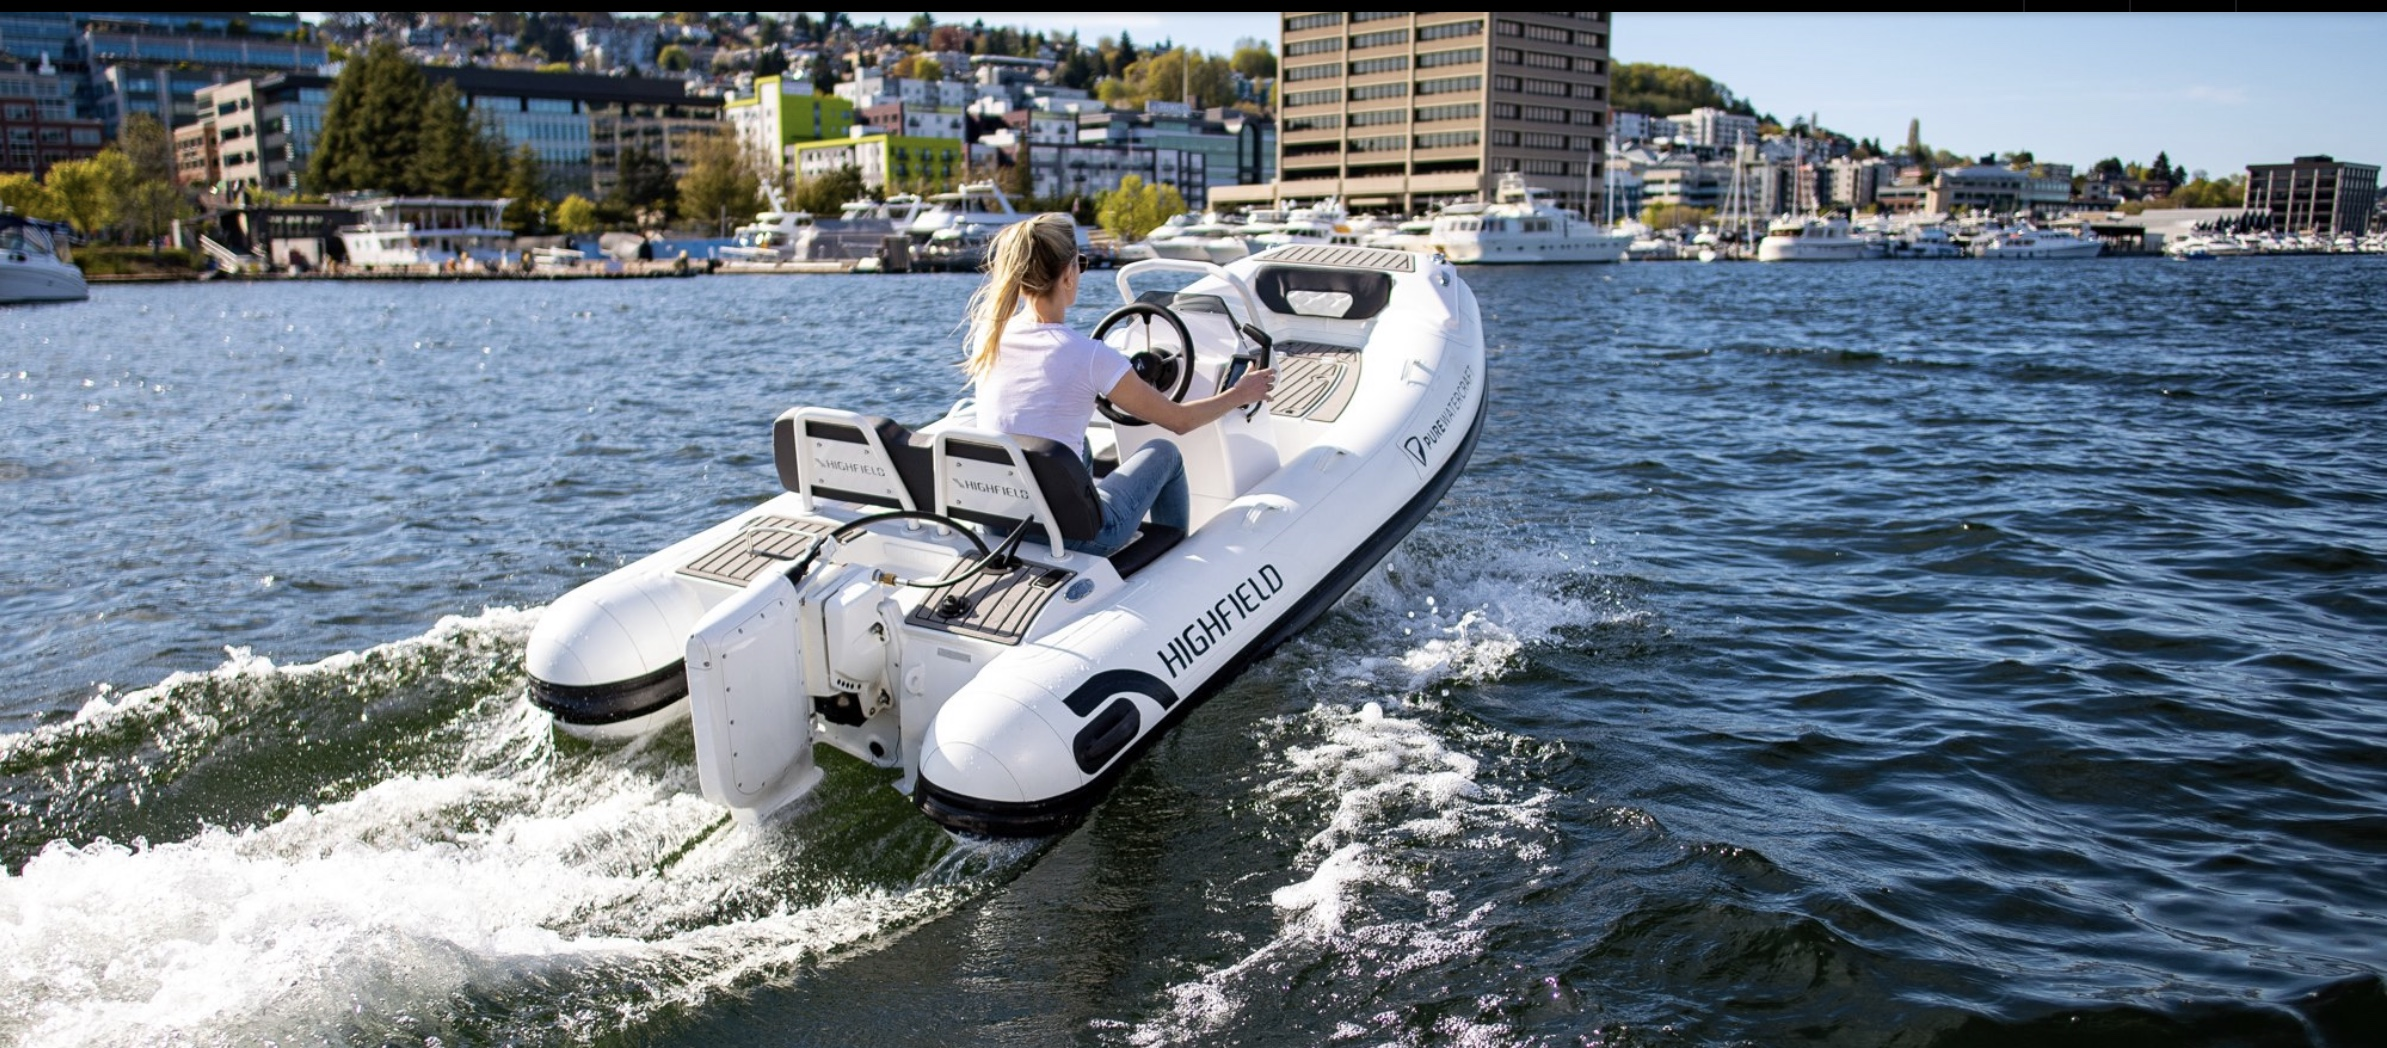 Pure Watercraft launches electric boat kits to electrify the most popular watercraft